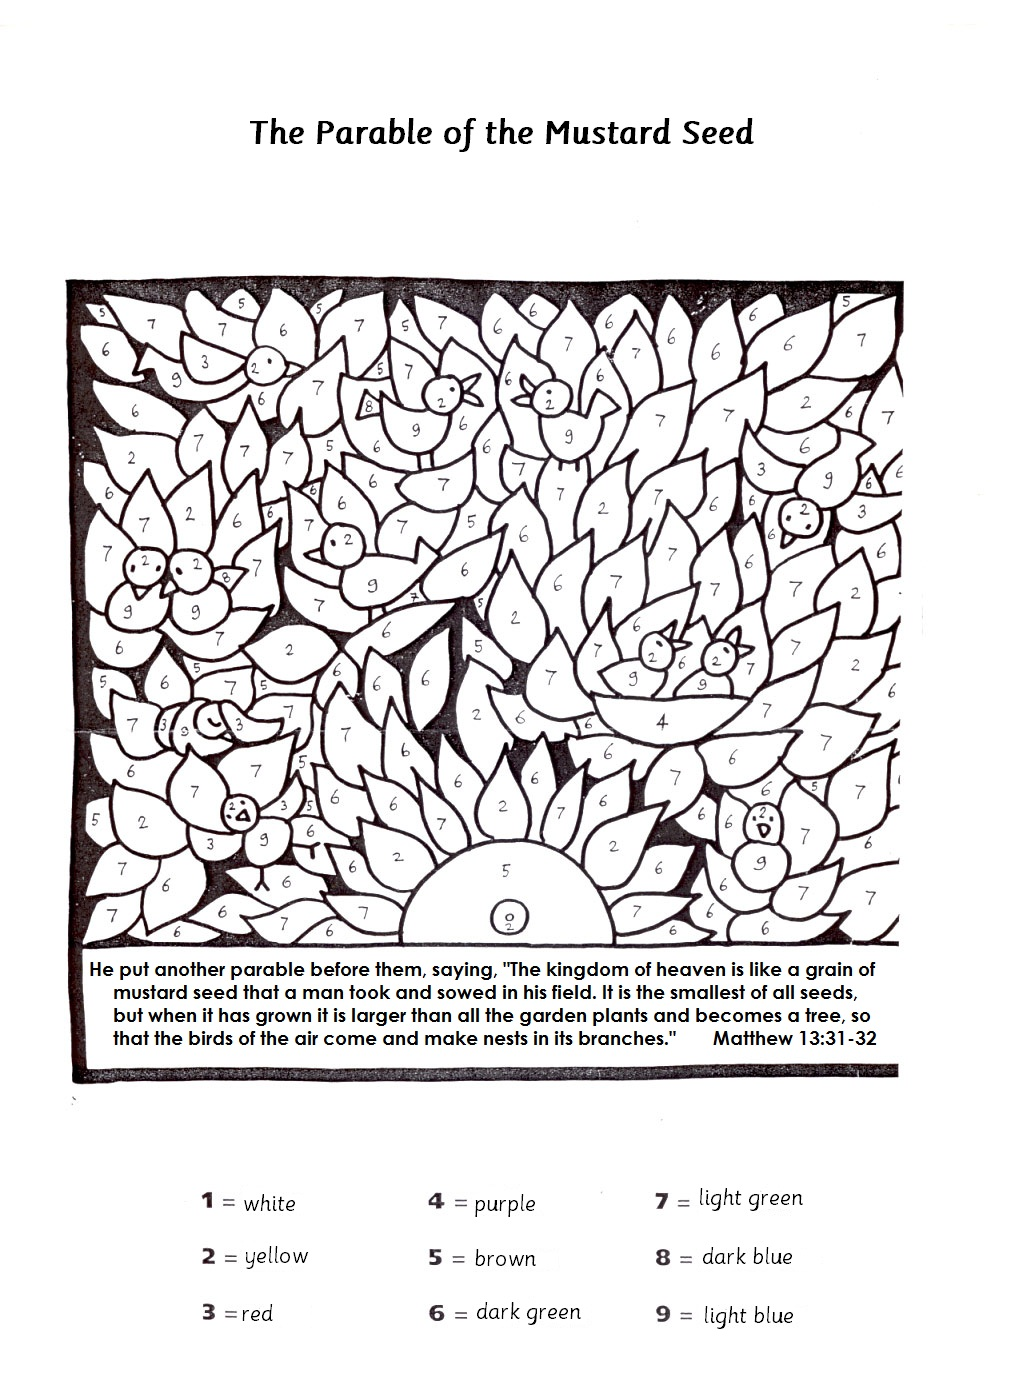 mustard seed coloring page - parable of the mustard seed coloring page murderthestout